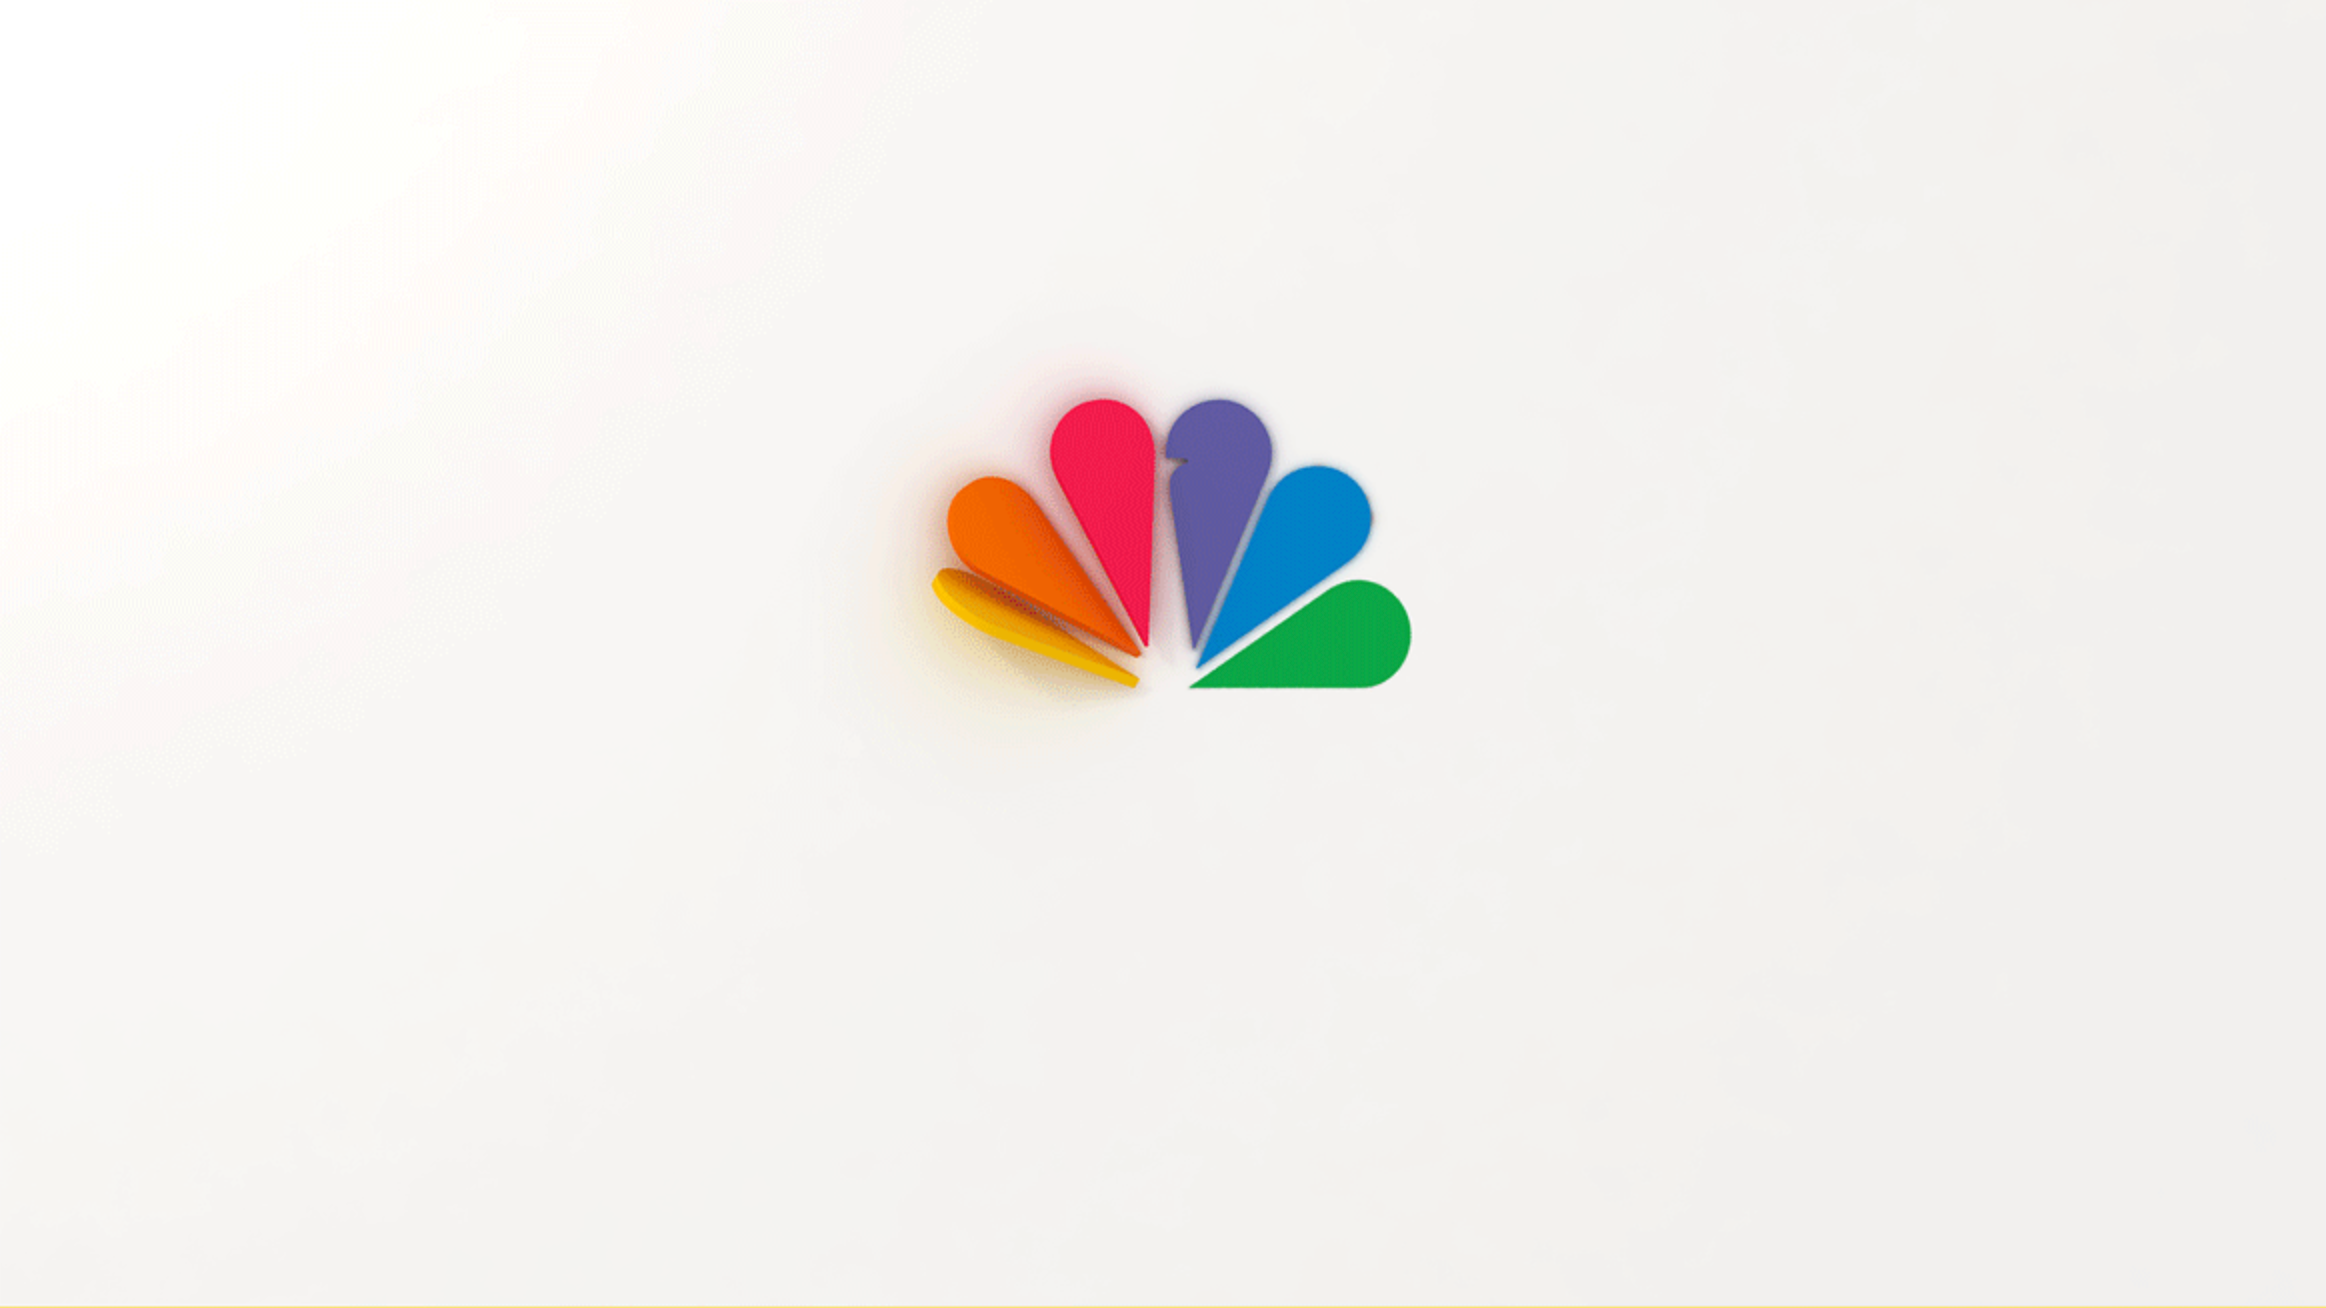 CNBC Network Design Artwork